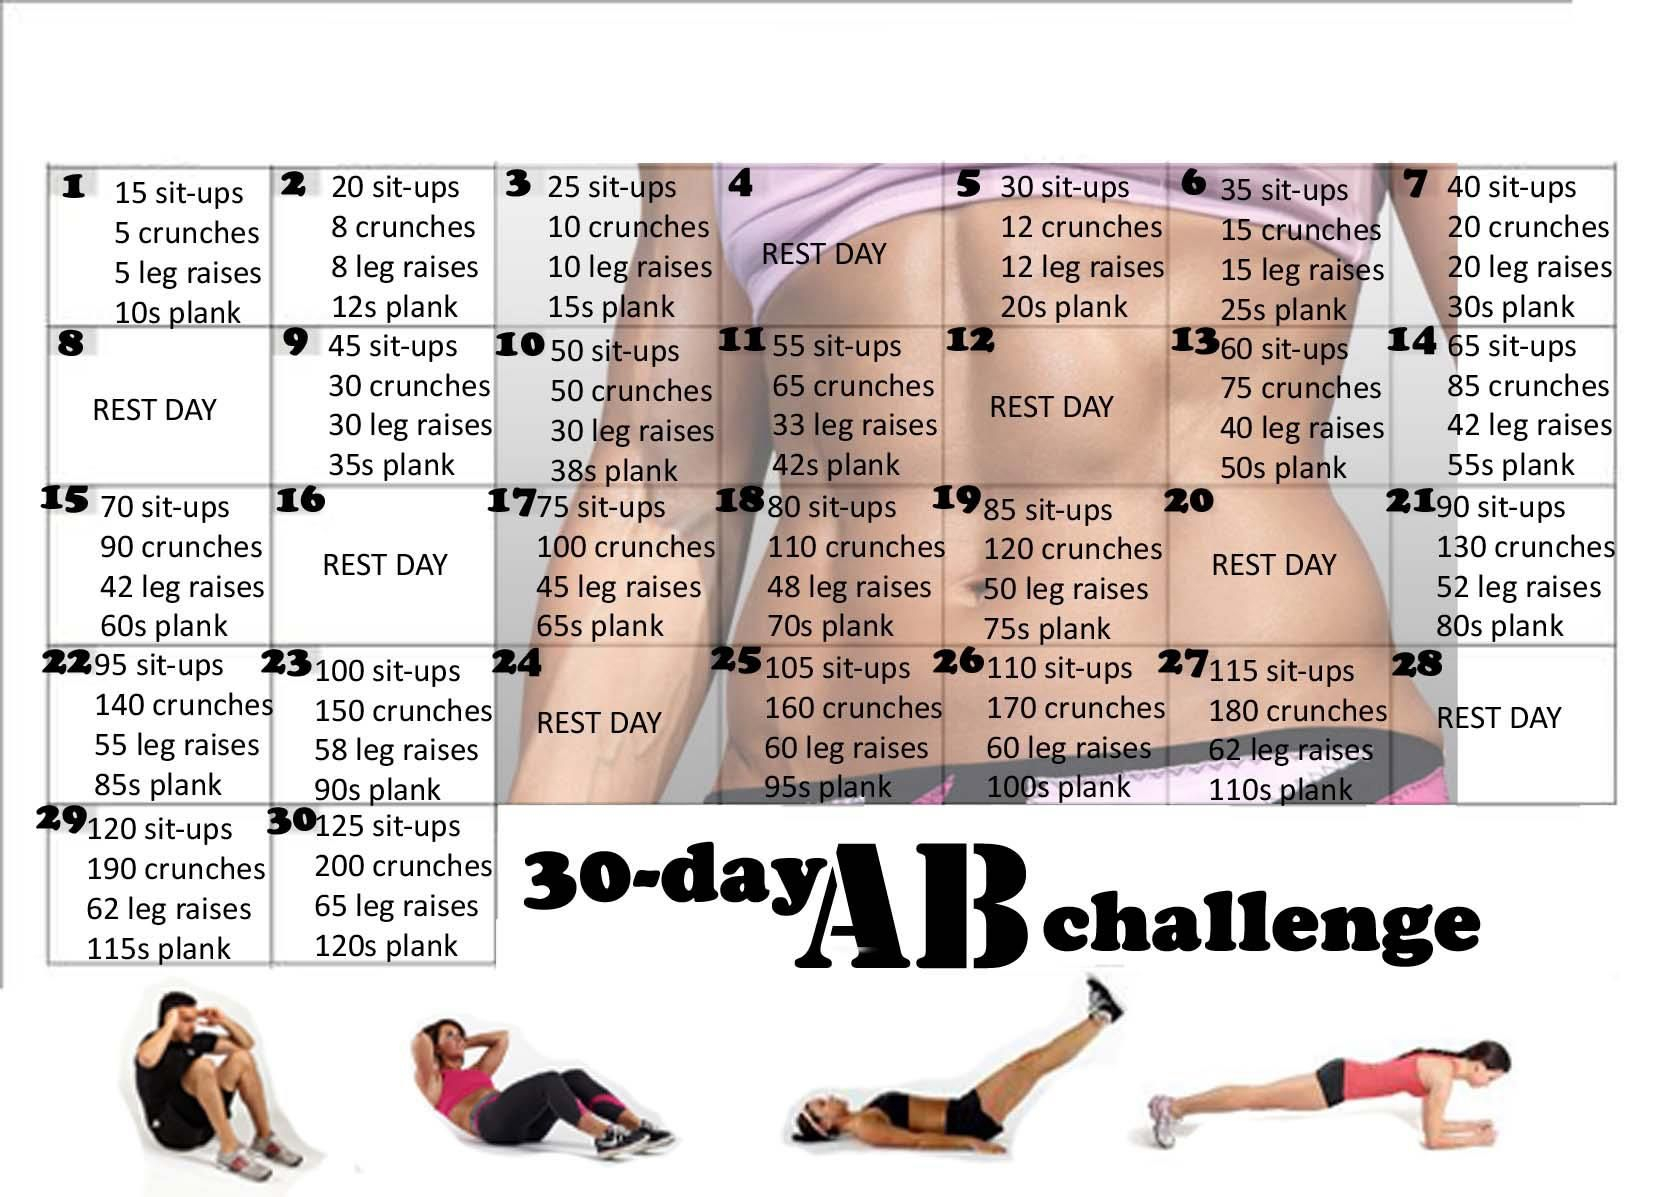 30 Day Ab Challenge | 30 Day Ab Challenge, 30 Day Abs, Ab Pertaining To 30 Day Challenge For A Flat Stomach Calender